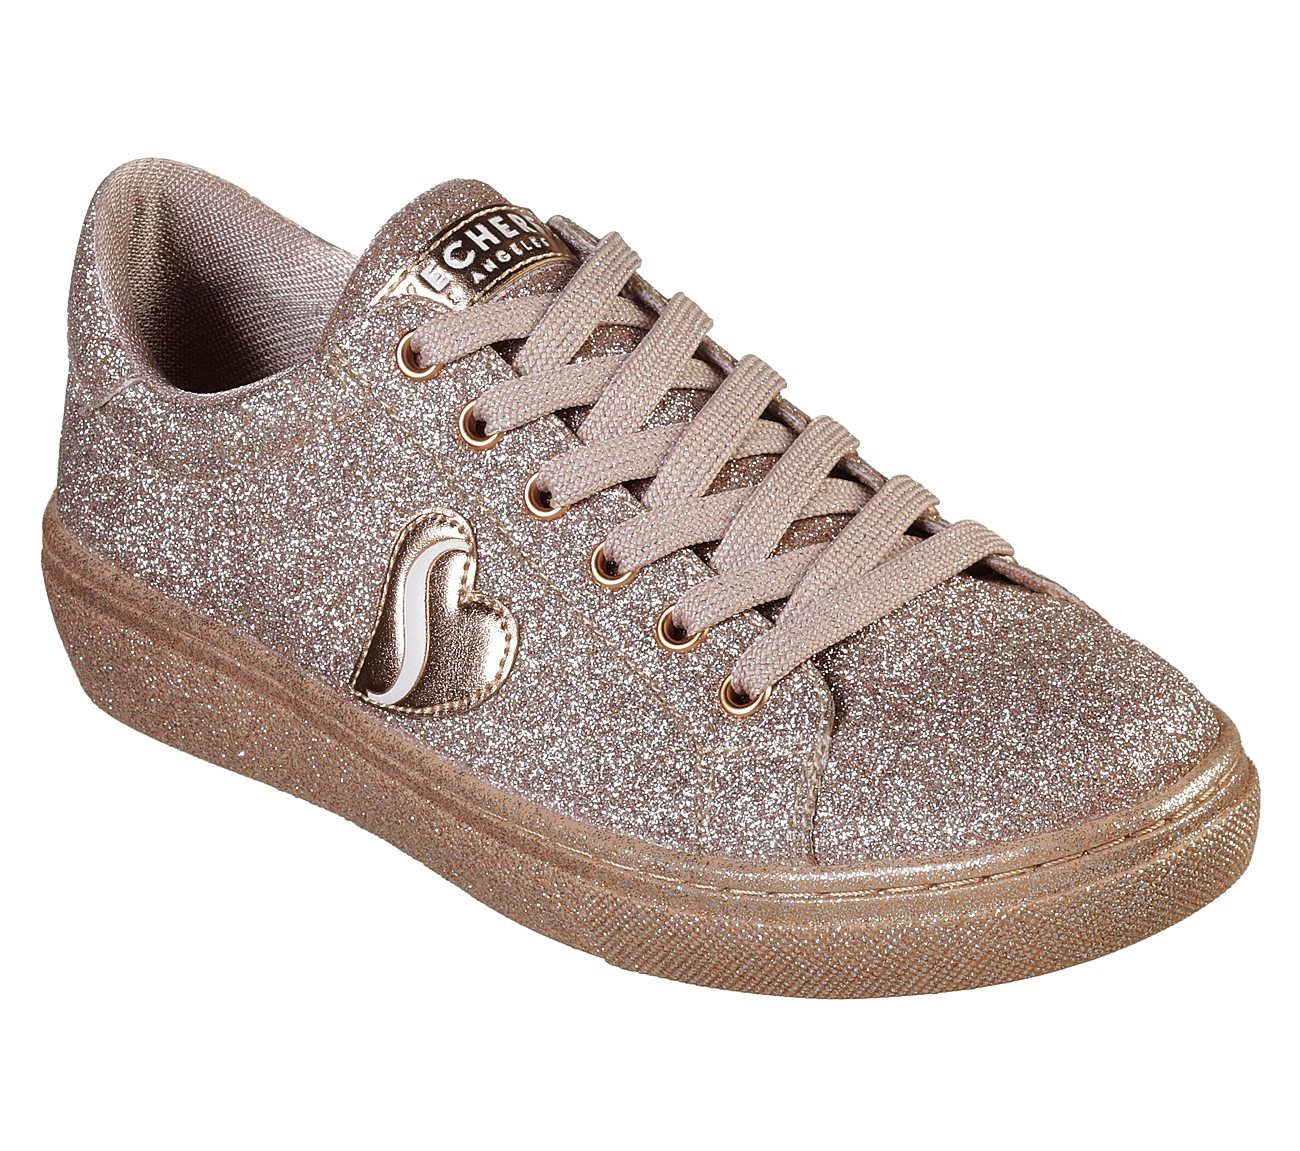 318c569d4079 Buy SKECHERS Goldie - Dazzle N Free Lace-Up Sneakers Shoes only  95.00